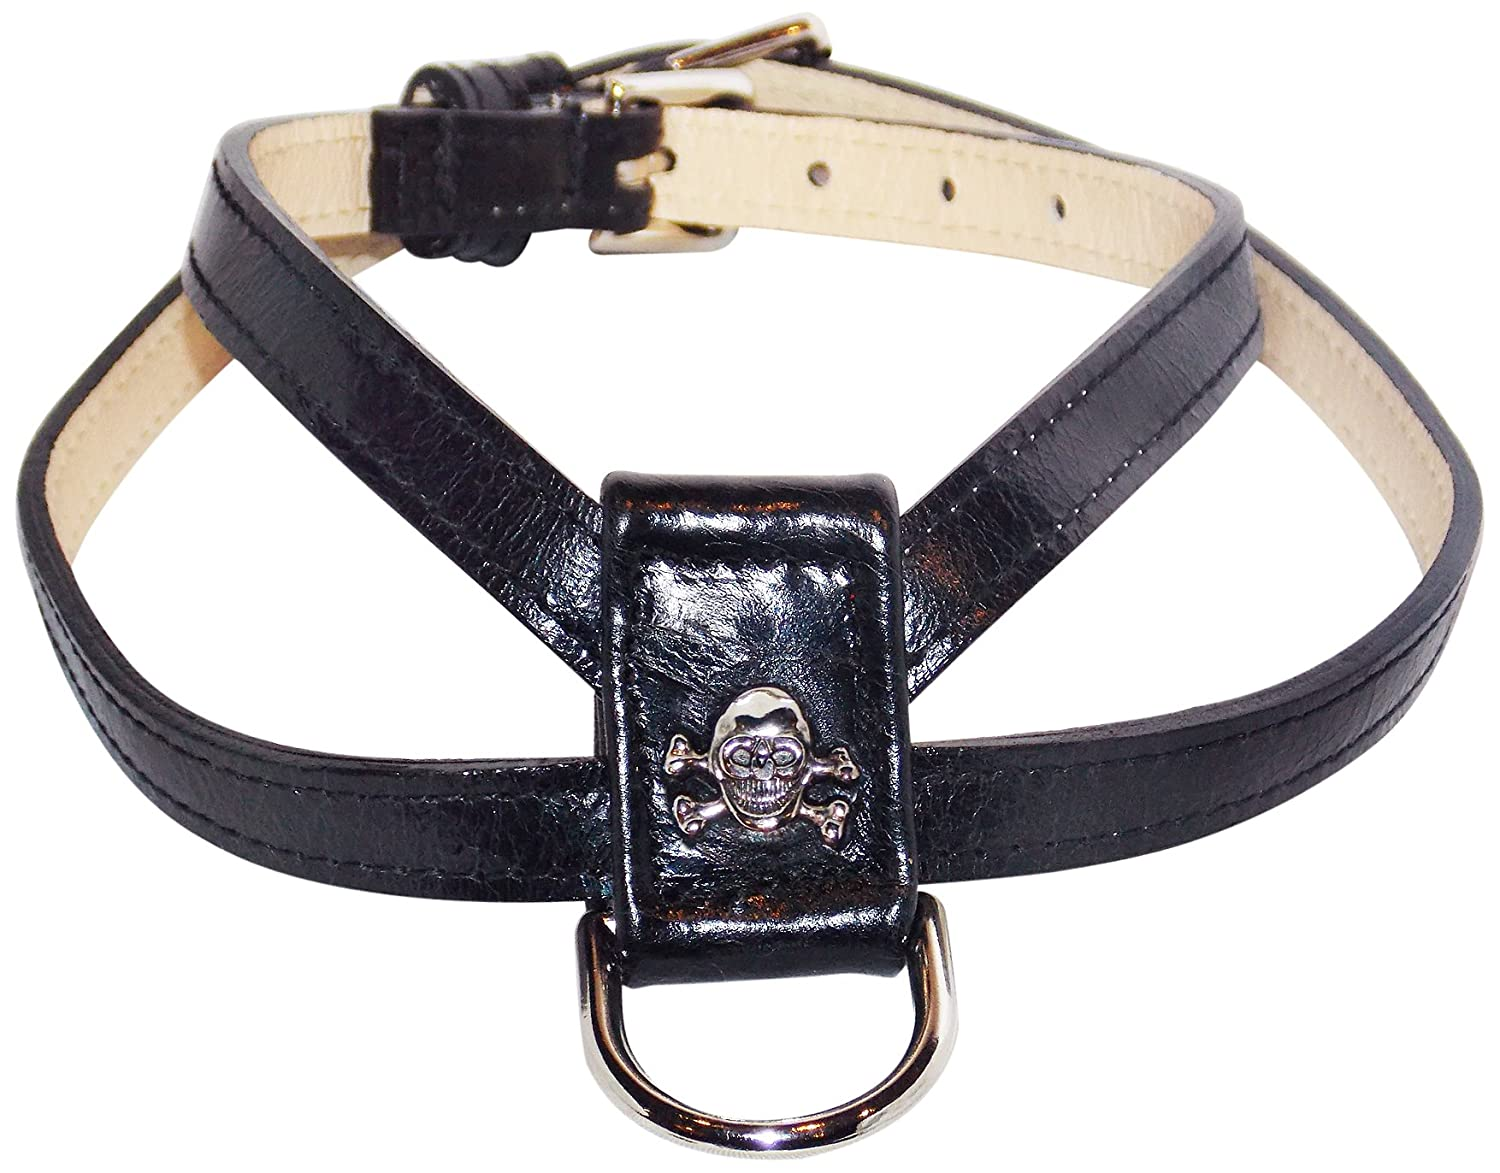 BLACK Small BLACK Small POOCHEE DESIGNS Large Skull K Dog Harness, Small, 14 to 17, for pets up to 12lbs, 1 2  wide, Black with Large Skull Rivet